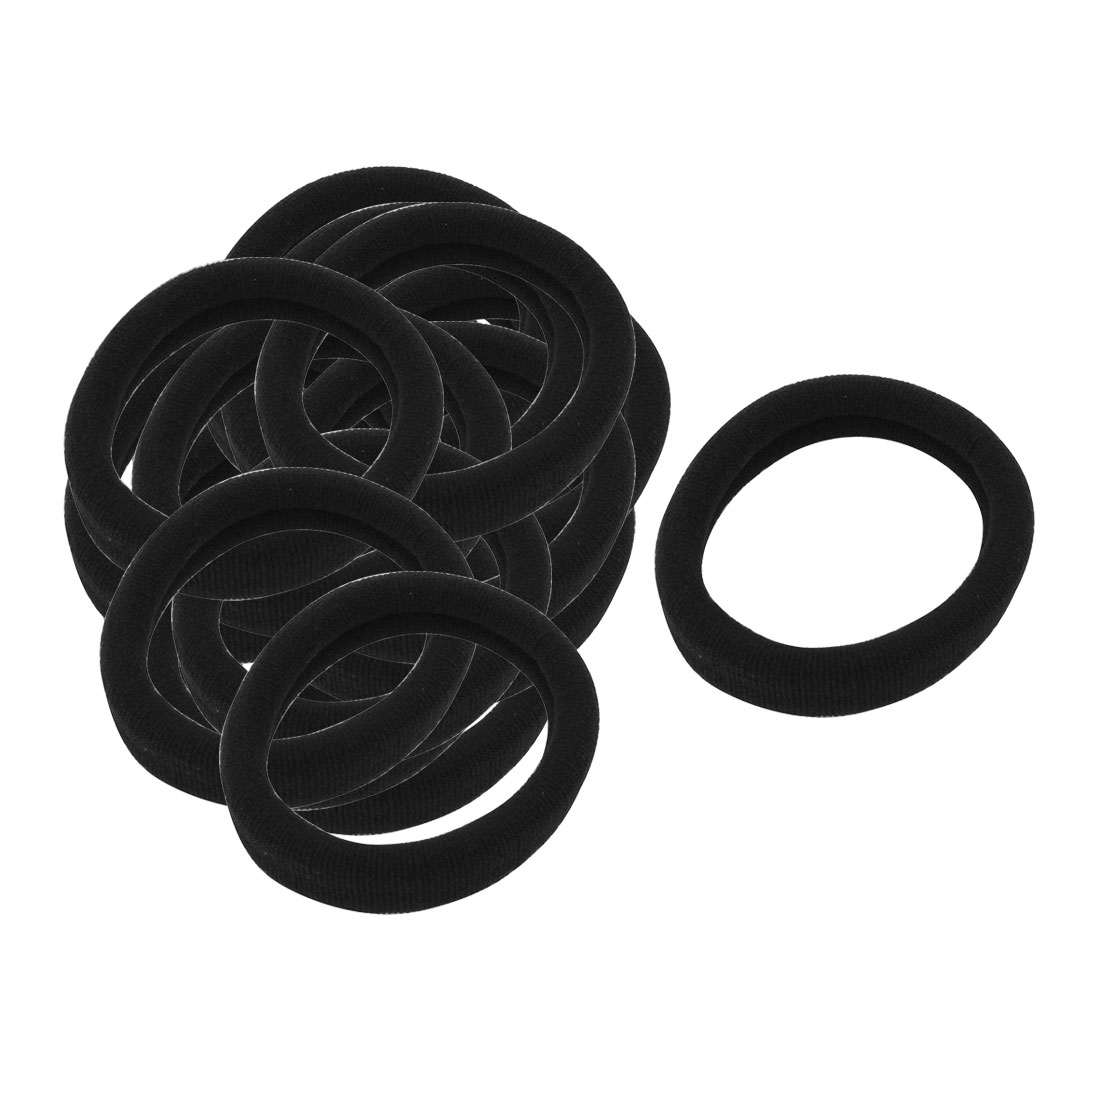 Girls Women Black Stretch Ponytail Holders Hair Ties Bands Decoration 20 Pcs